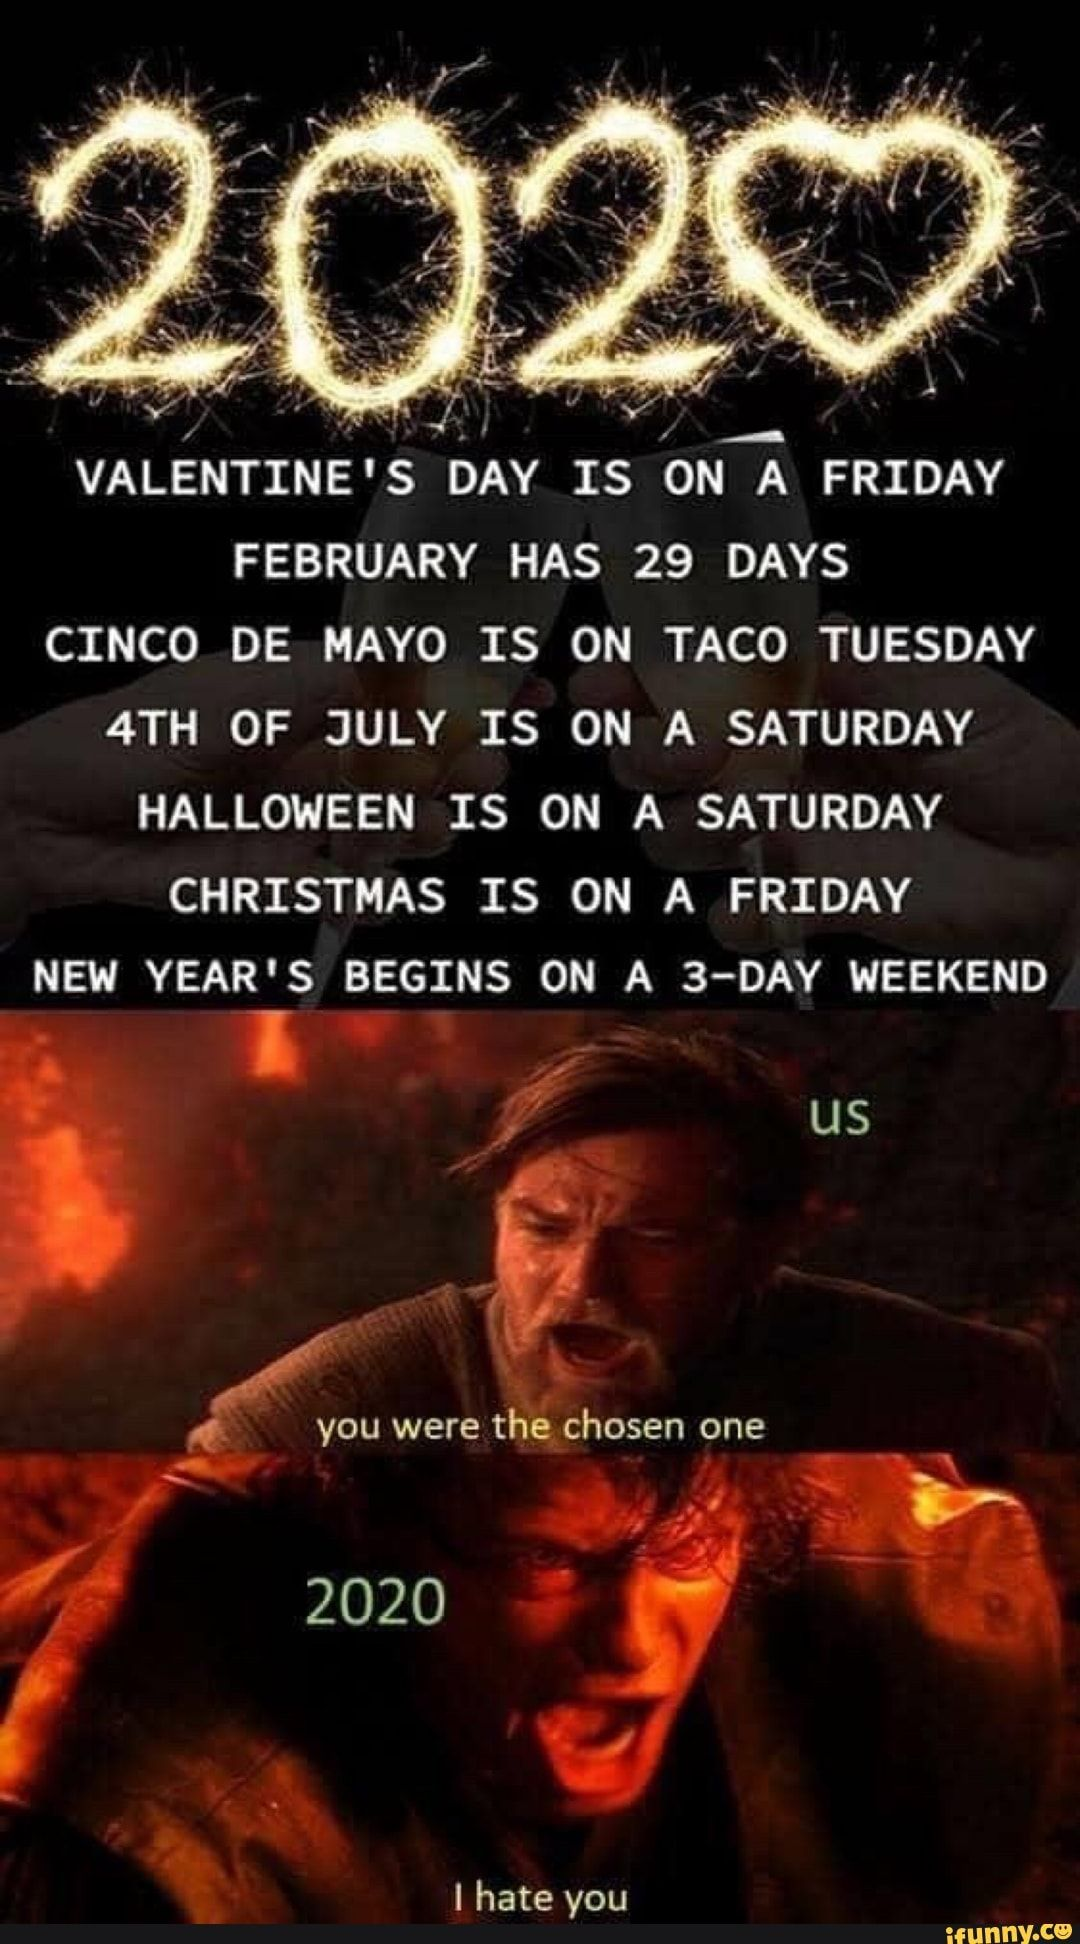 Valentine S Day Is On A Friday February Has 29 Days Cinco De Mayo Is On Taco Tuesday 4th Of July Is On A Saturday Halloween Is On A Saturday Christmas Is On